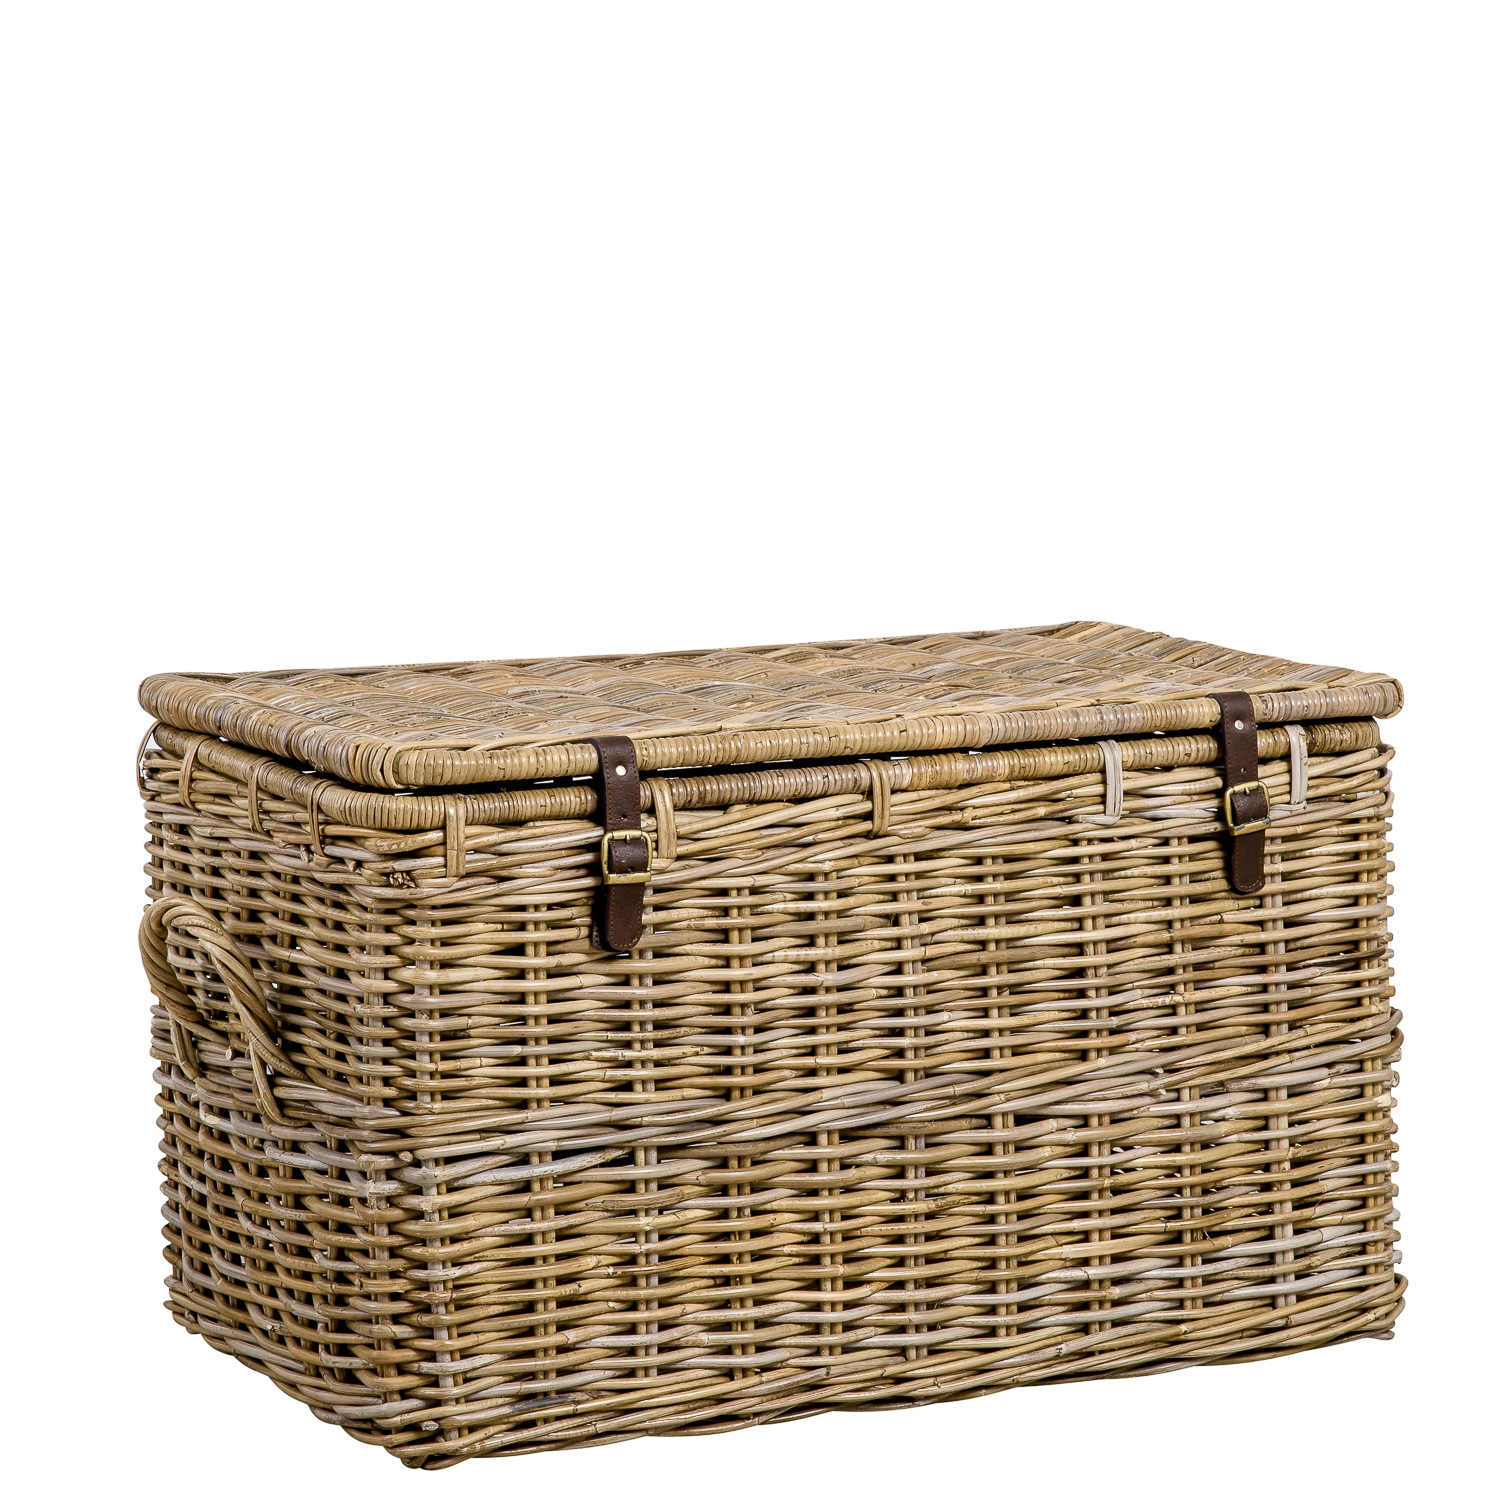 Rattan Trunk Large From Storage Box